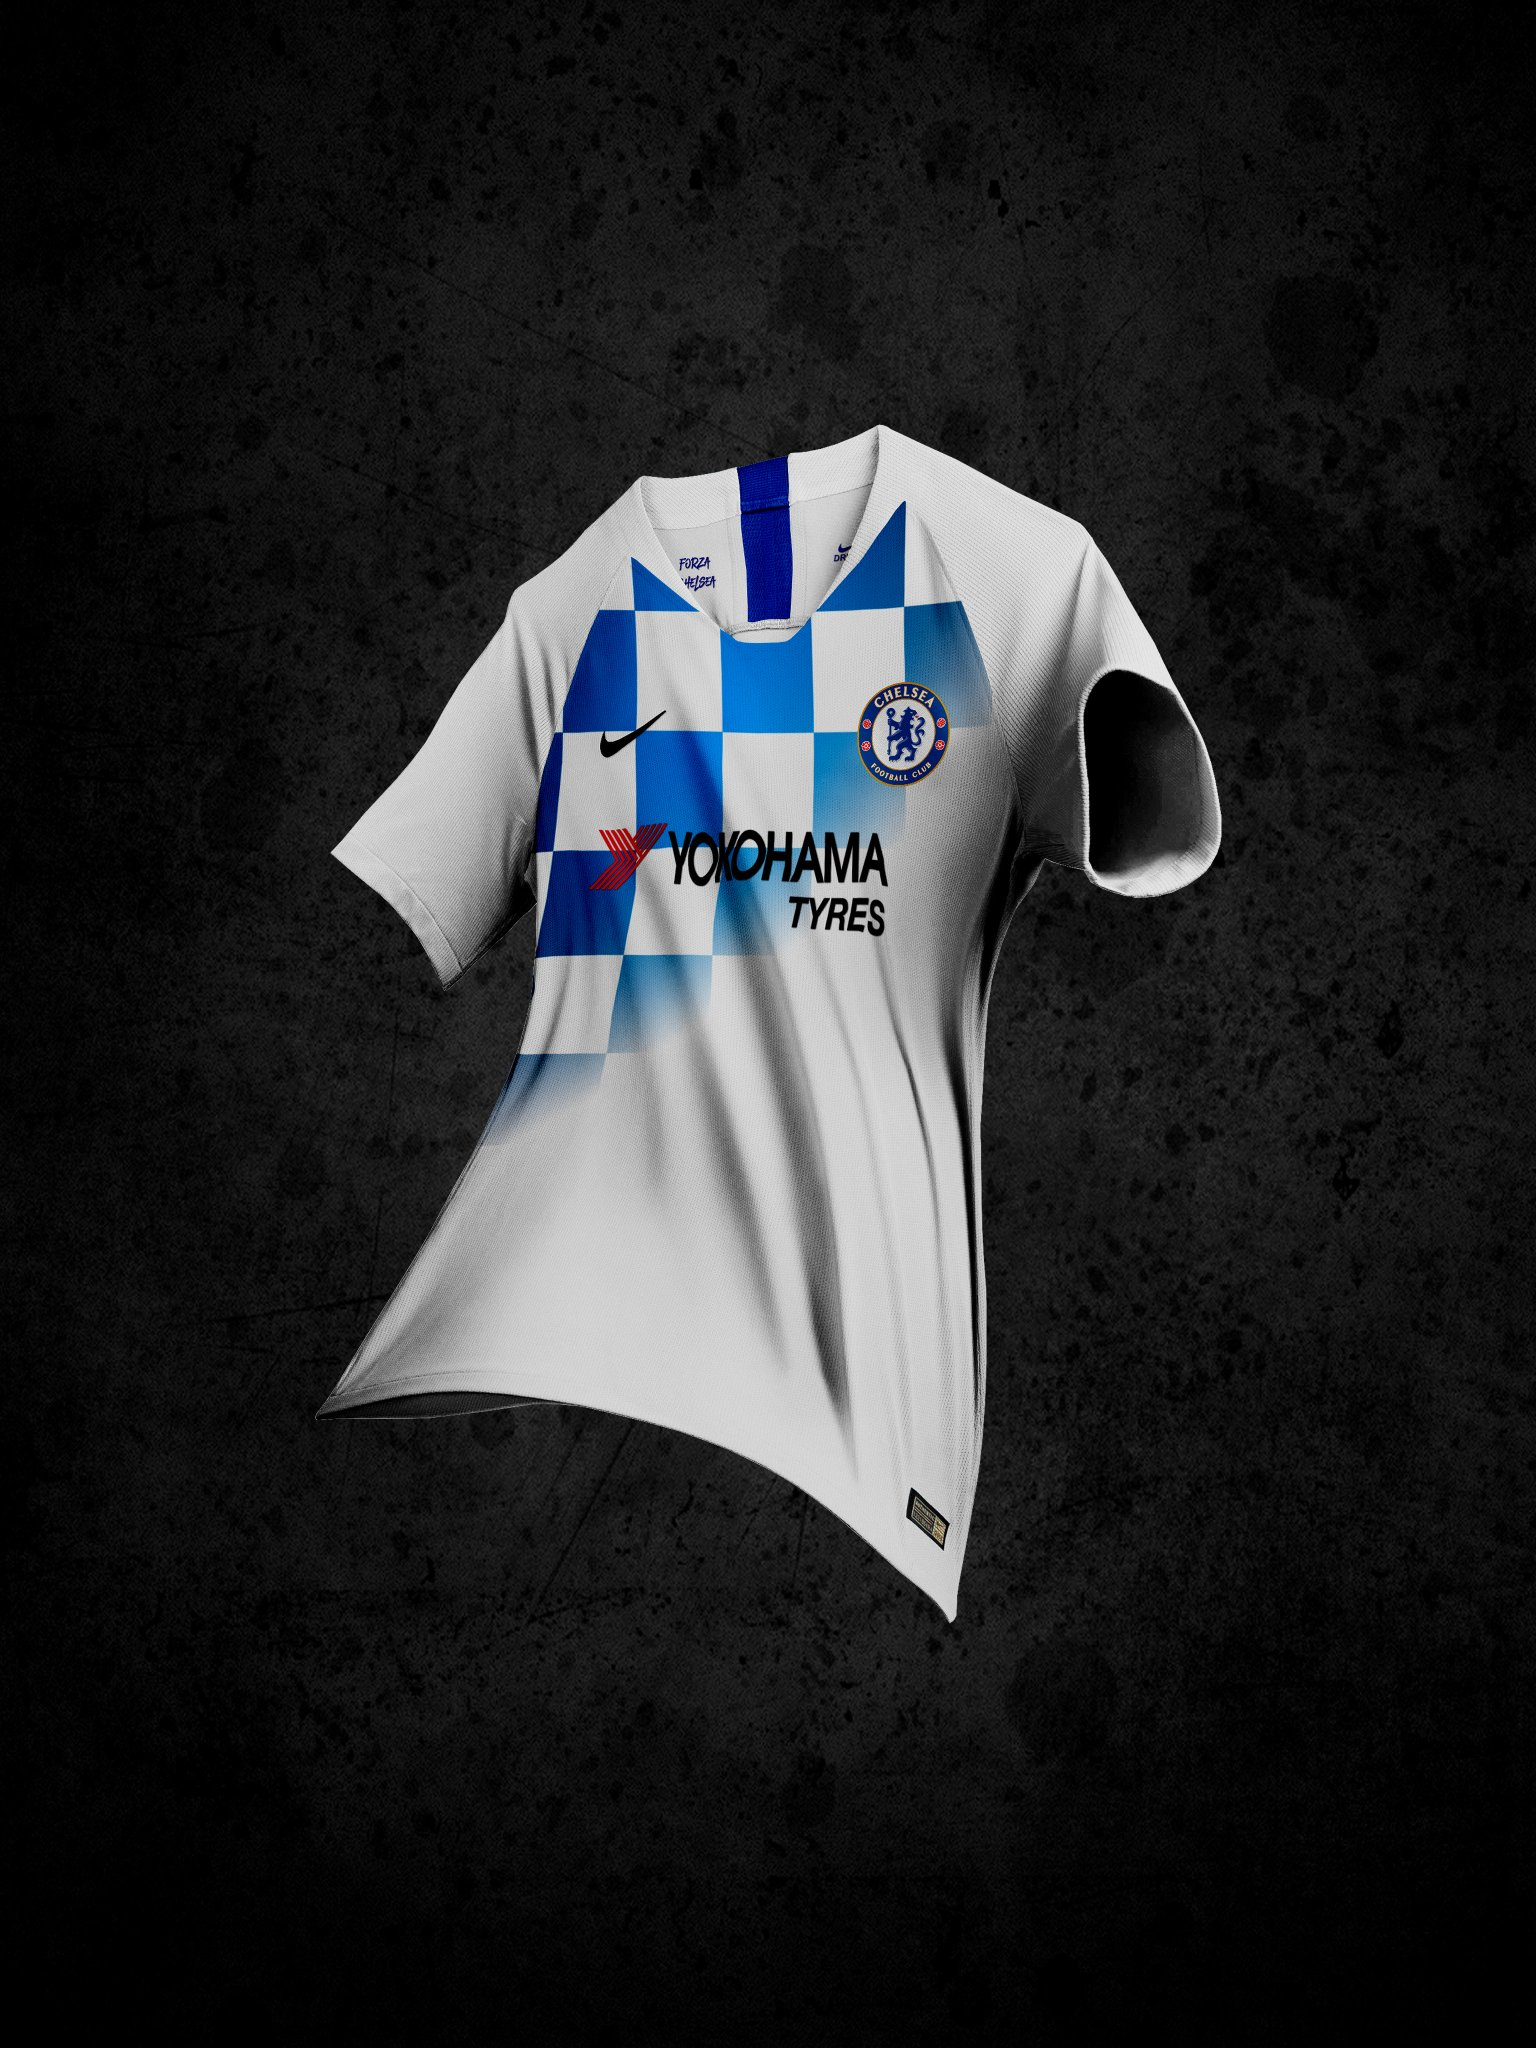 huge discount 44b2e afa17 Chelsea's Away Kit Concept for 2019/20 is Doing the Rounds